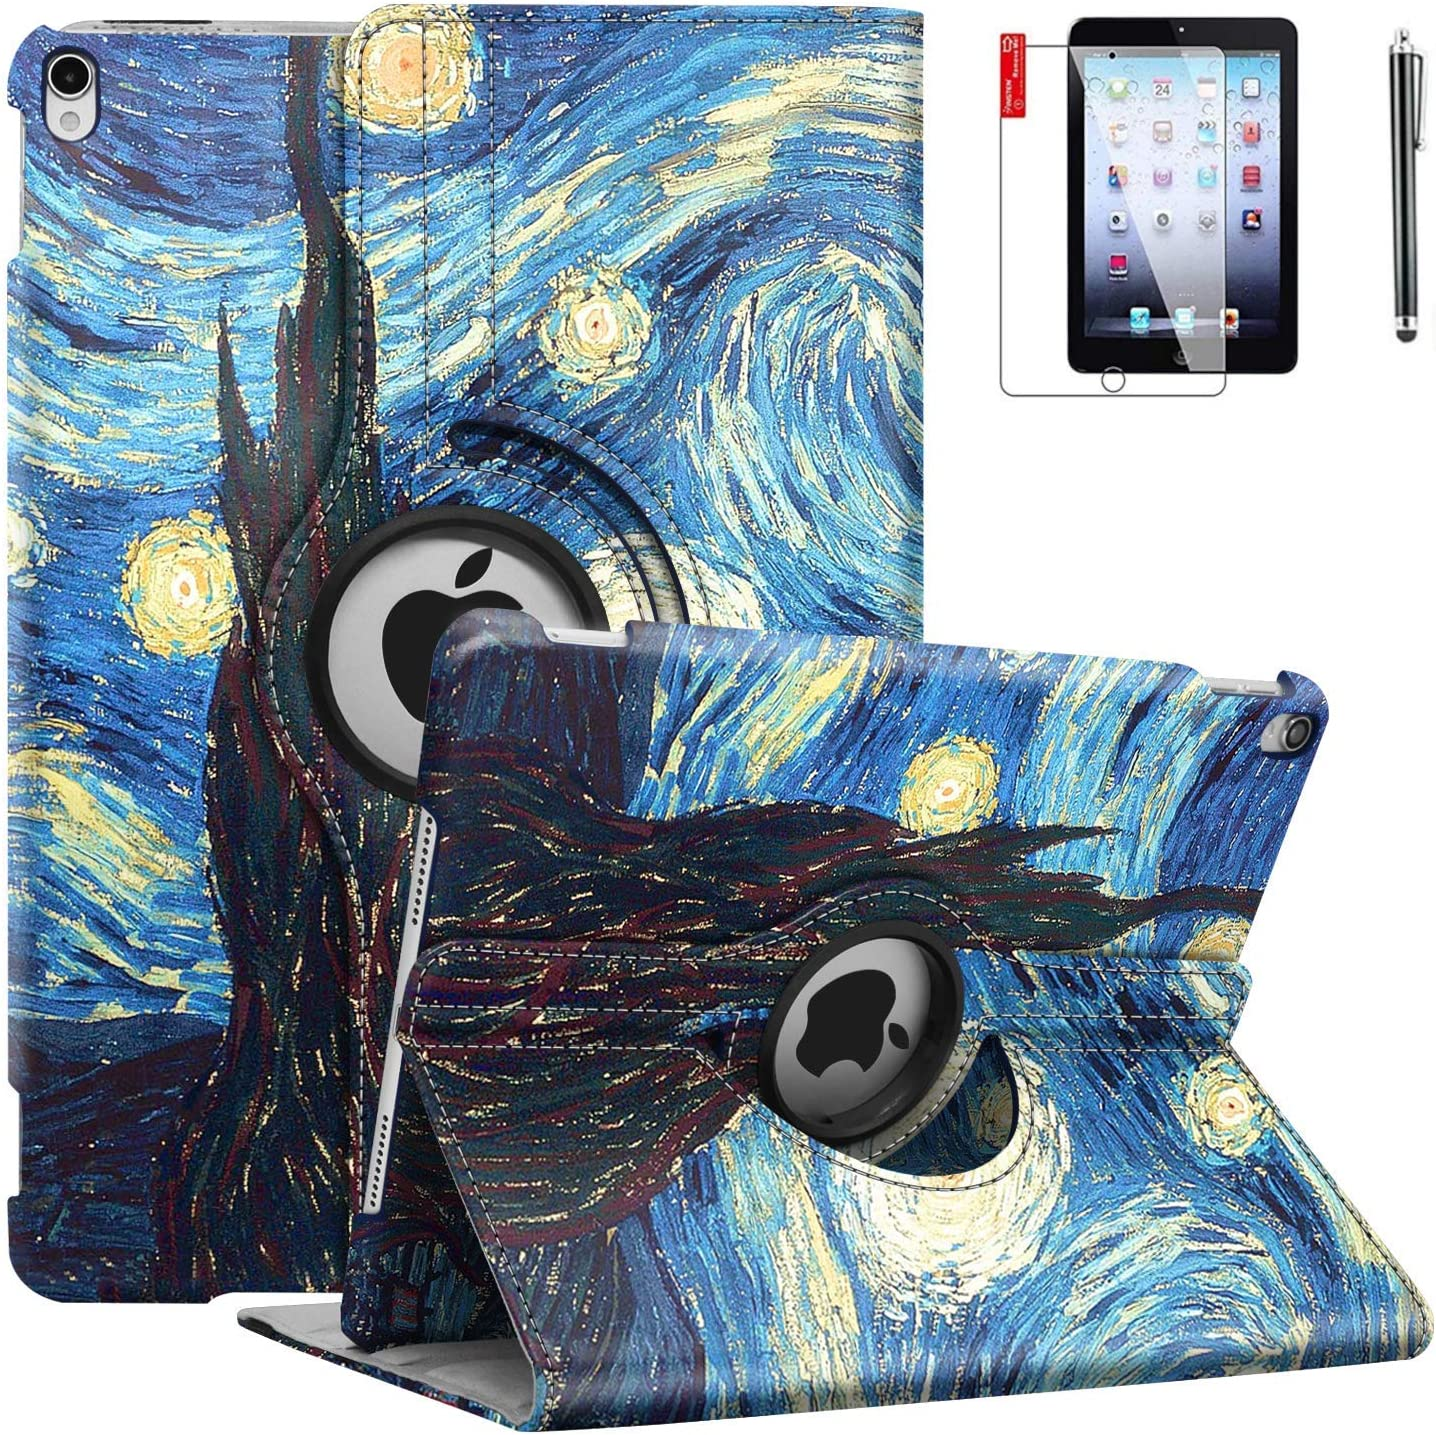 iPad 9.7 inch 2018 2017 Air1 Case - iPad 5th 6th Generation Case - 360 Degree Rotating Stand, Auto Sleep Wake, Shockproof -A1822 A1823 A1474 A1475 (Starry Night)